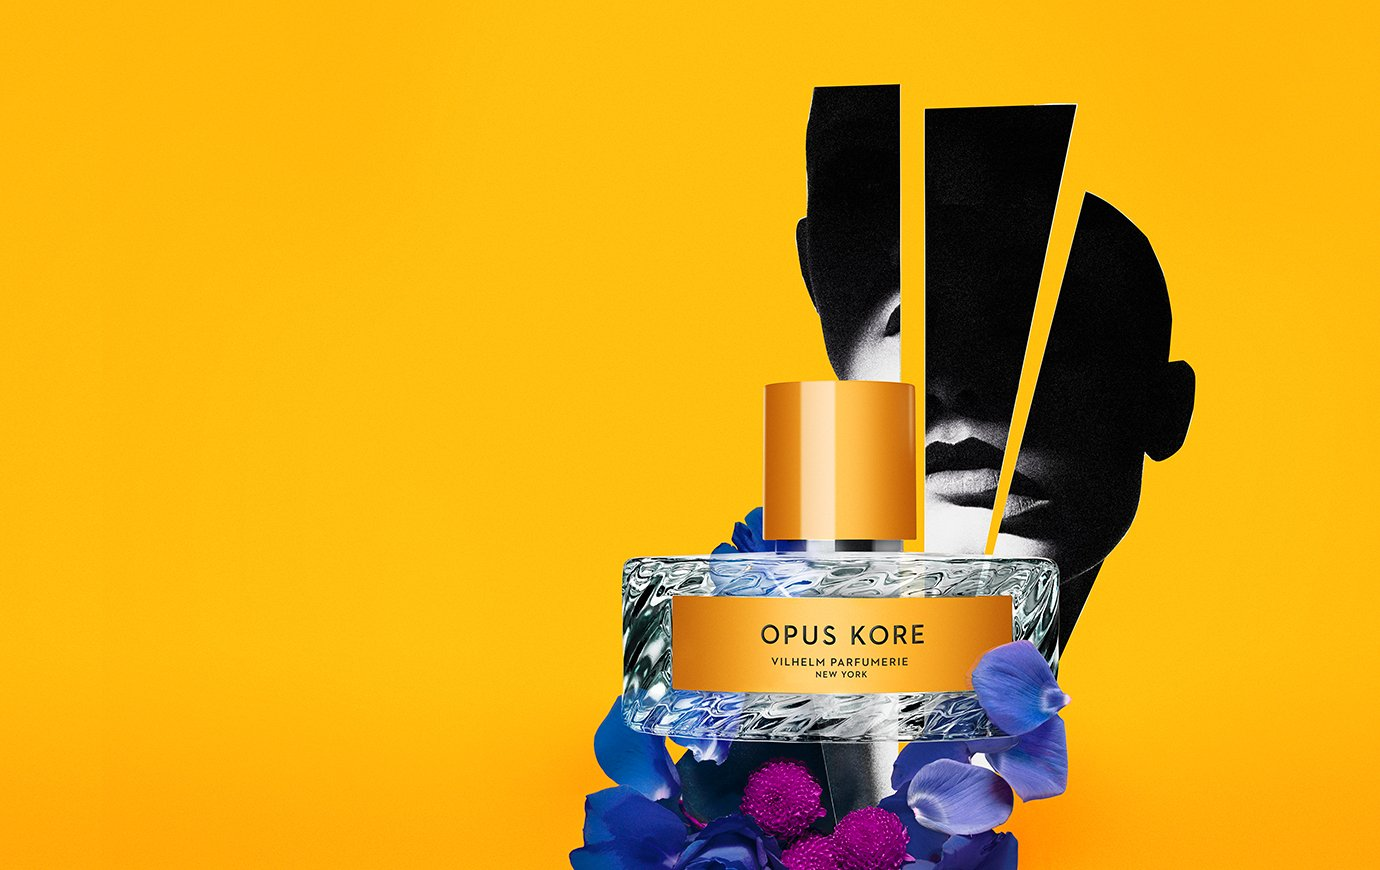 Fruity floral perfume smell